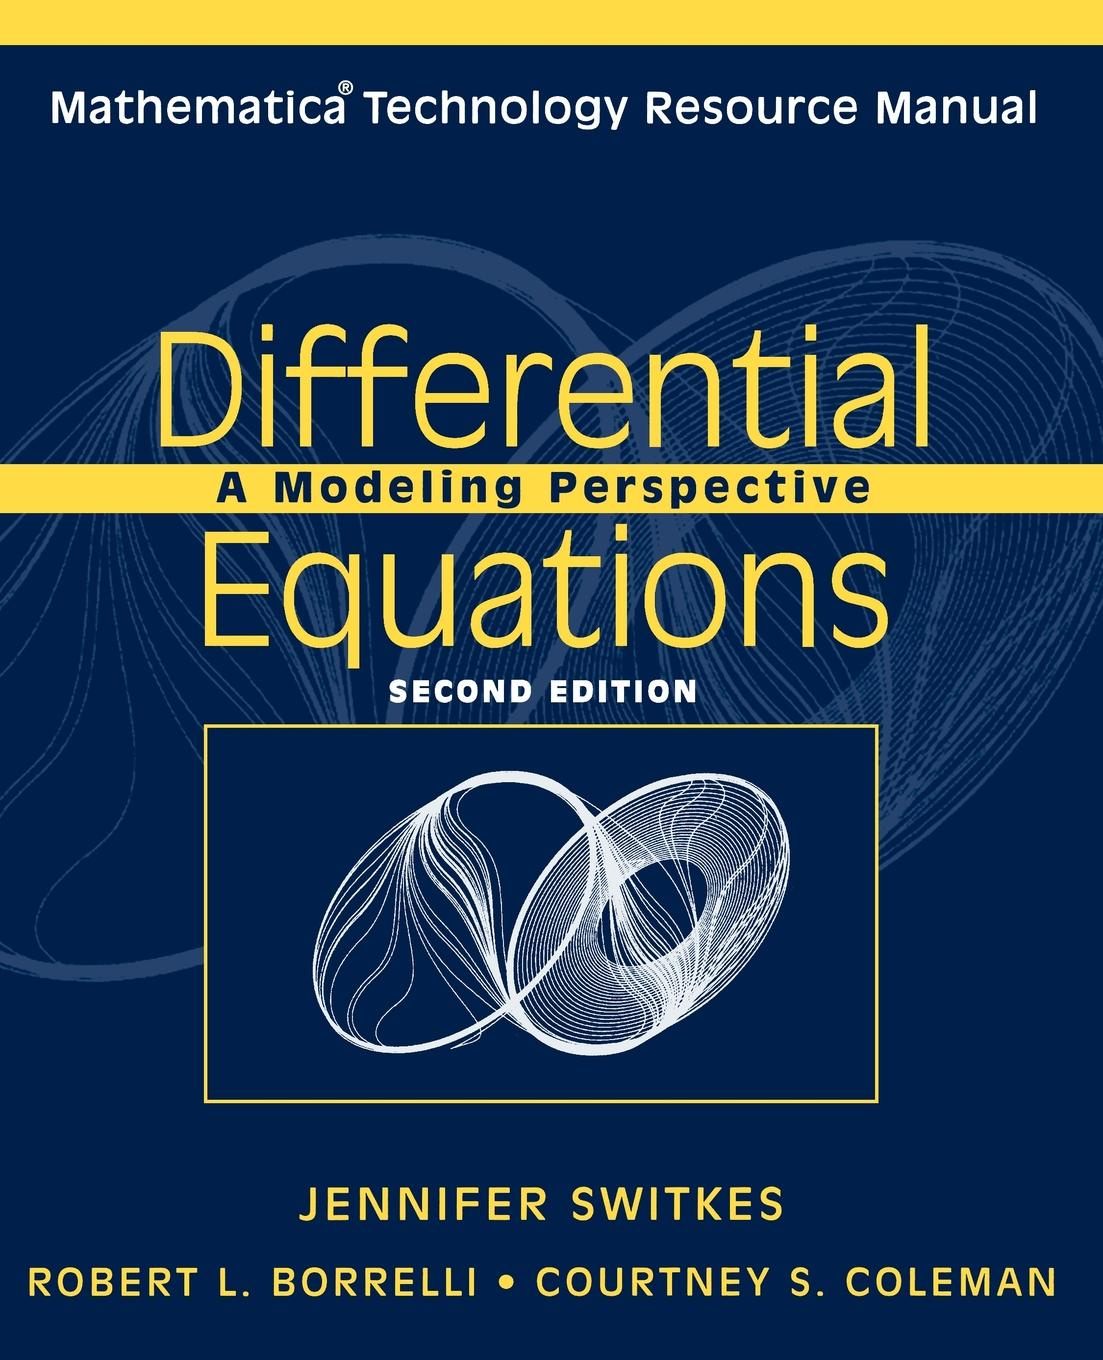 Courtney S. Coleman, Jennifer Switkes, Robert L. Borrelli Differential Equations, Mathematica Technology Resource Manual. A Modeling Perspective